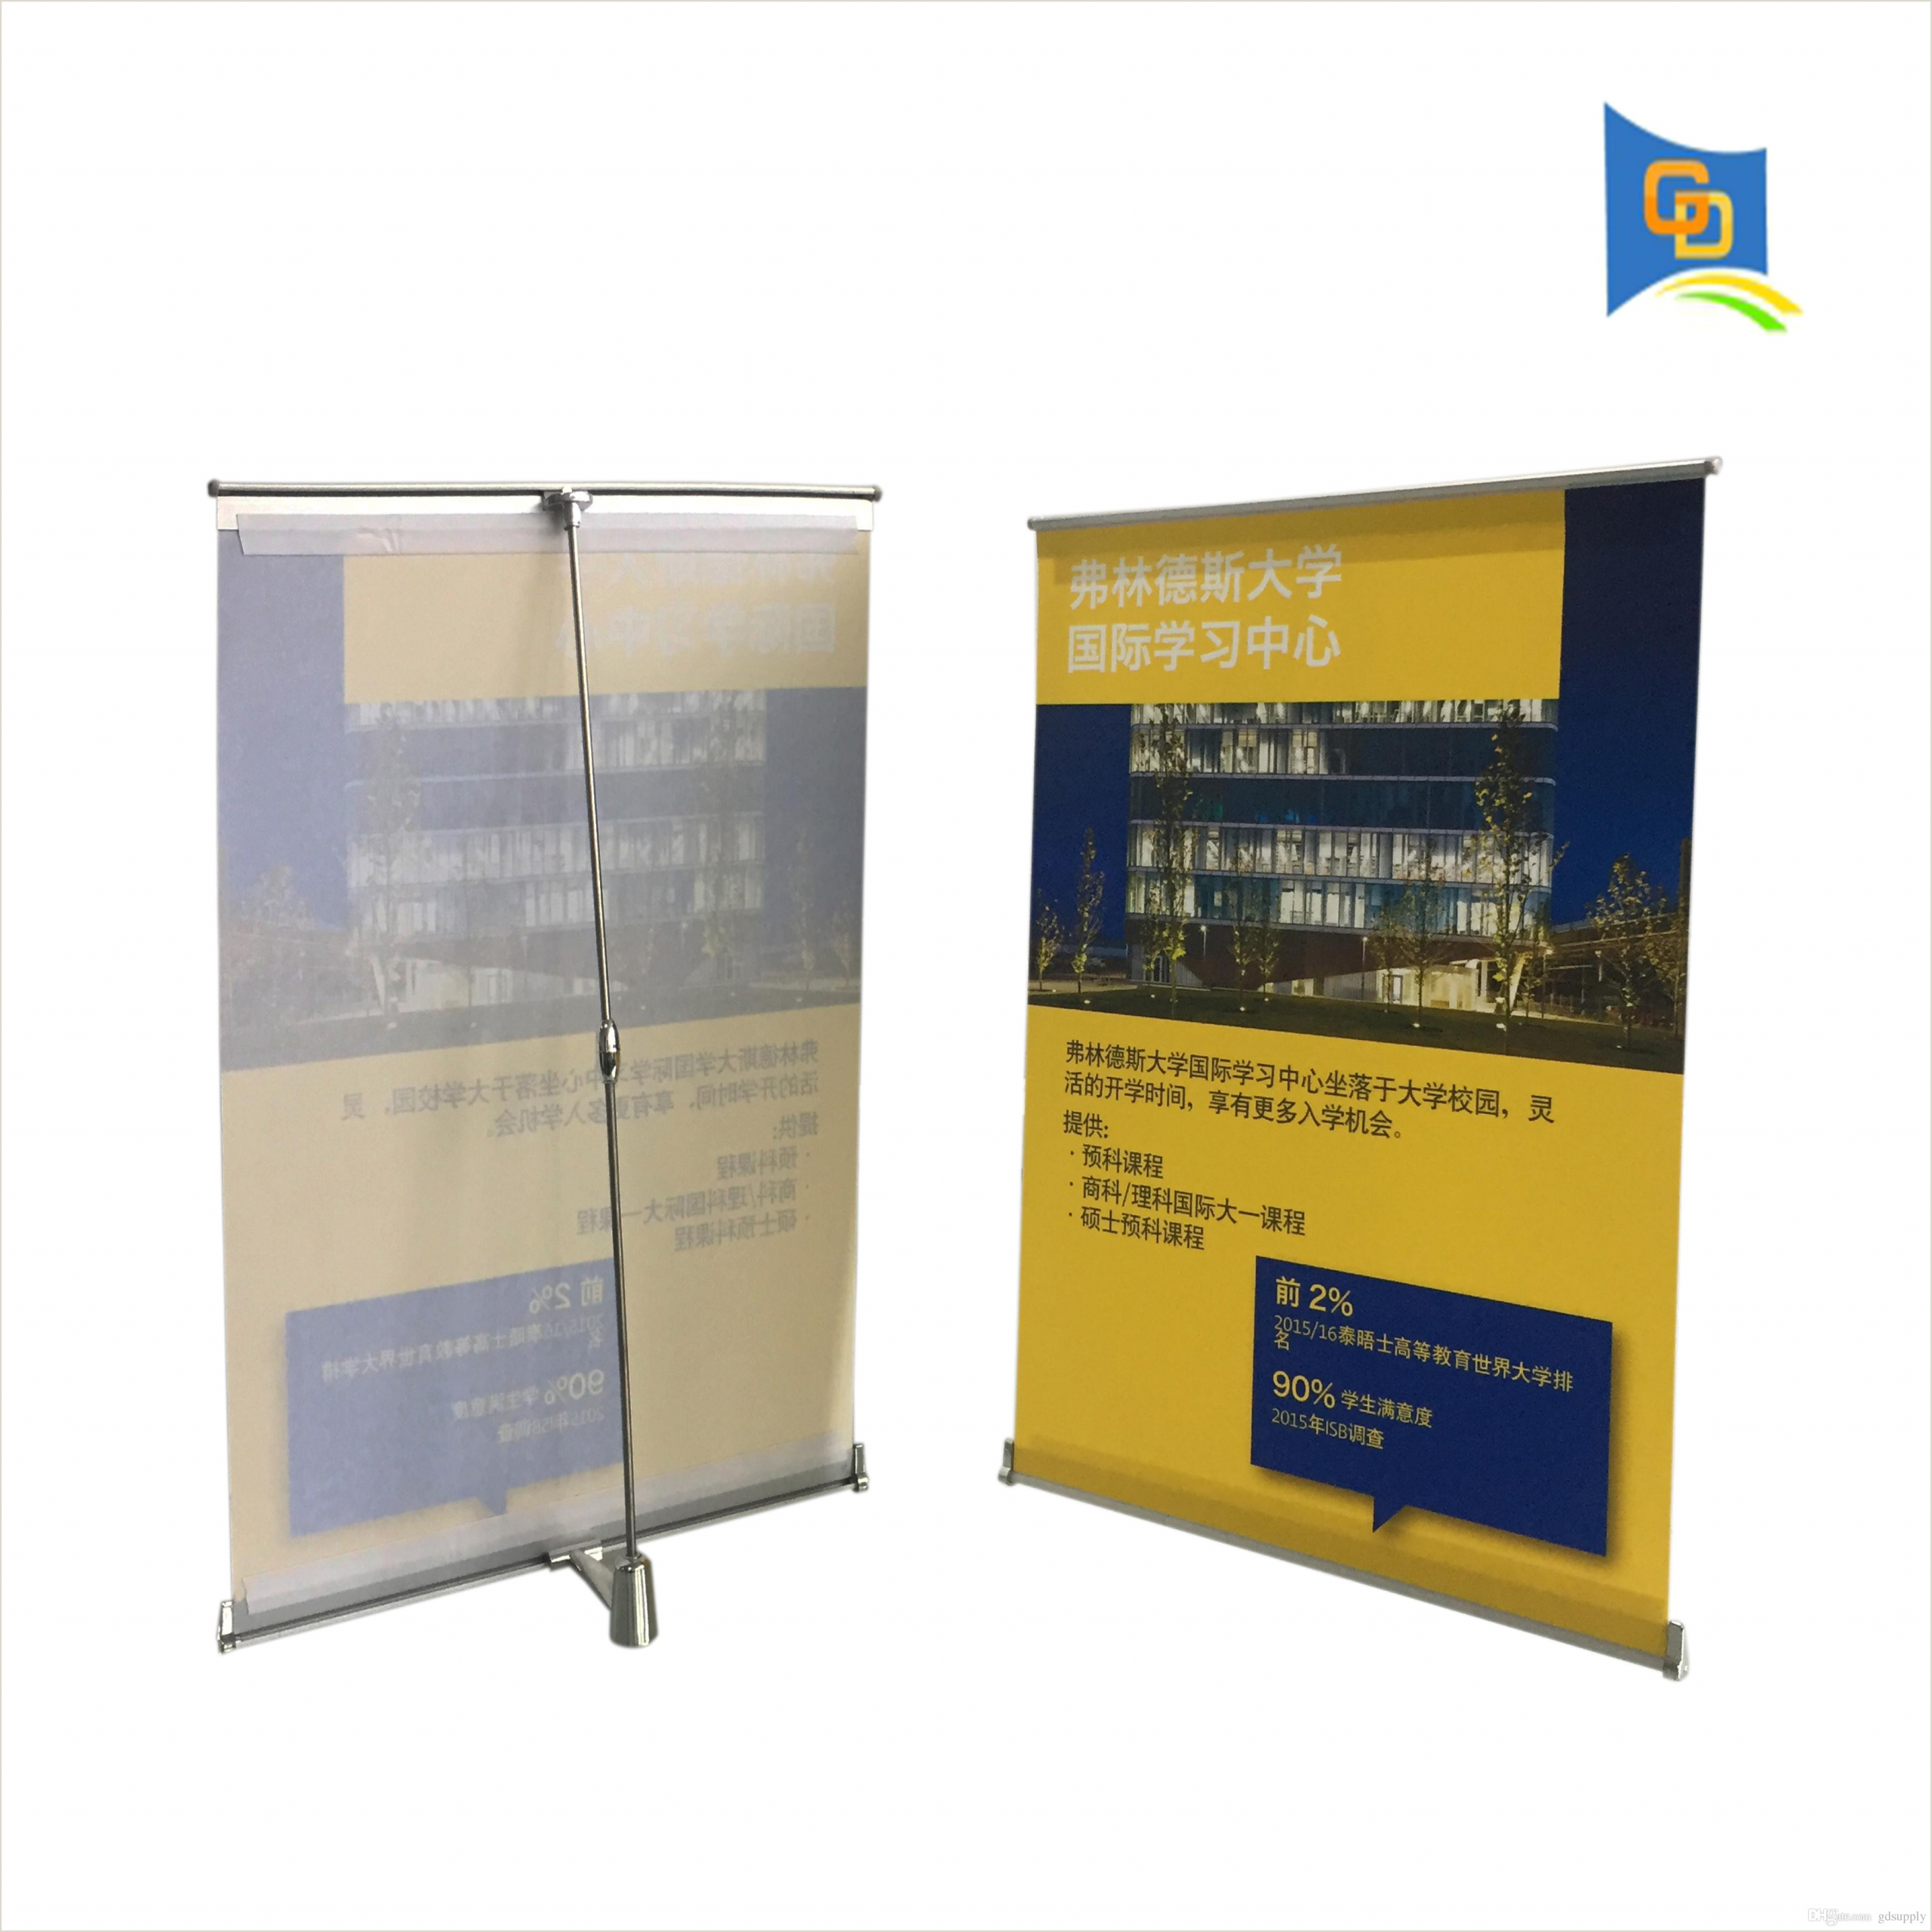 Pop Up Banner Specs 2020 Mini L Banner Desktop A3 Size Display Stand For Meeting From Gdsupply $5 64